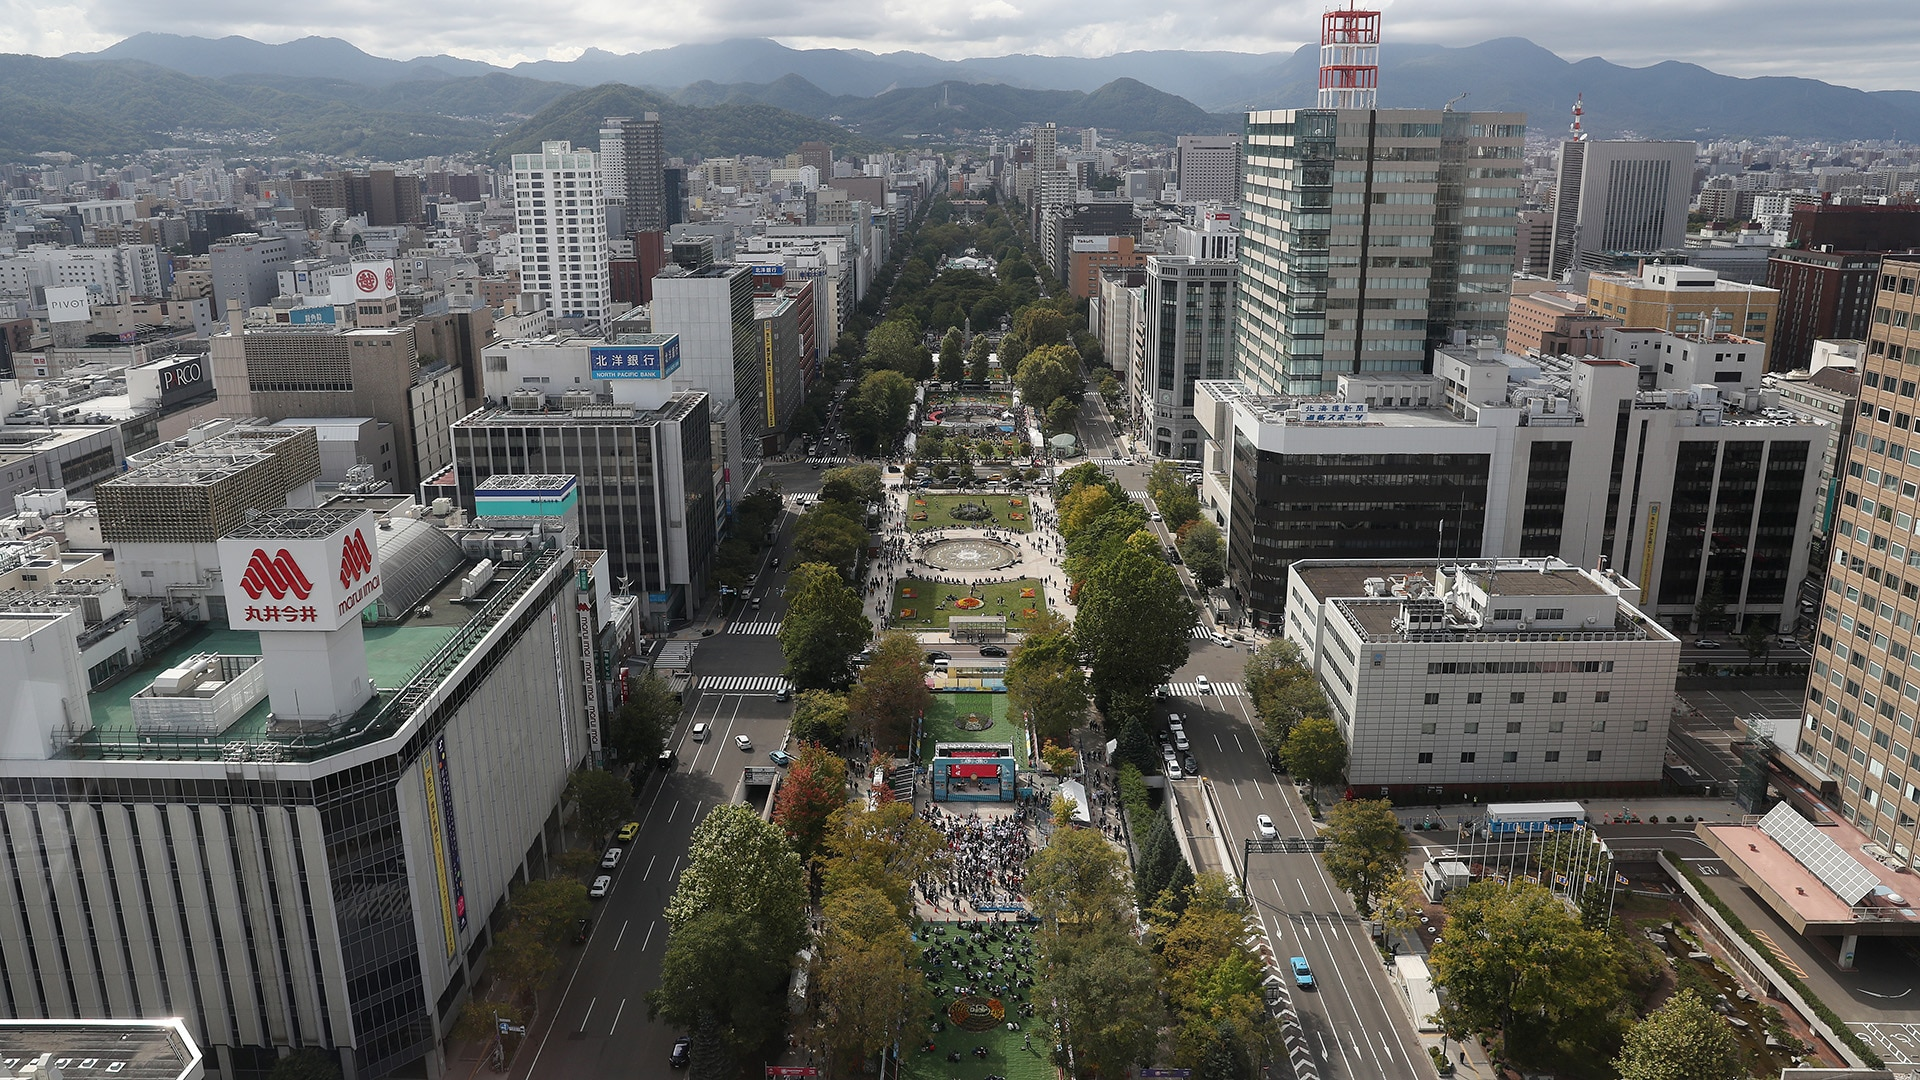 View of Odori Park Sapporo from the Sapporo TV Tower in Japan